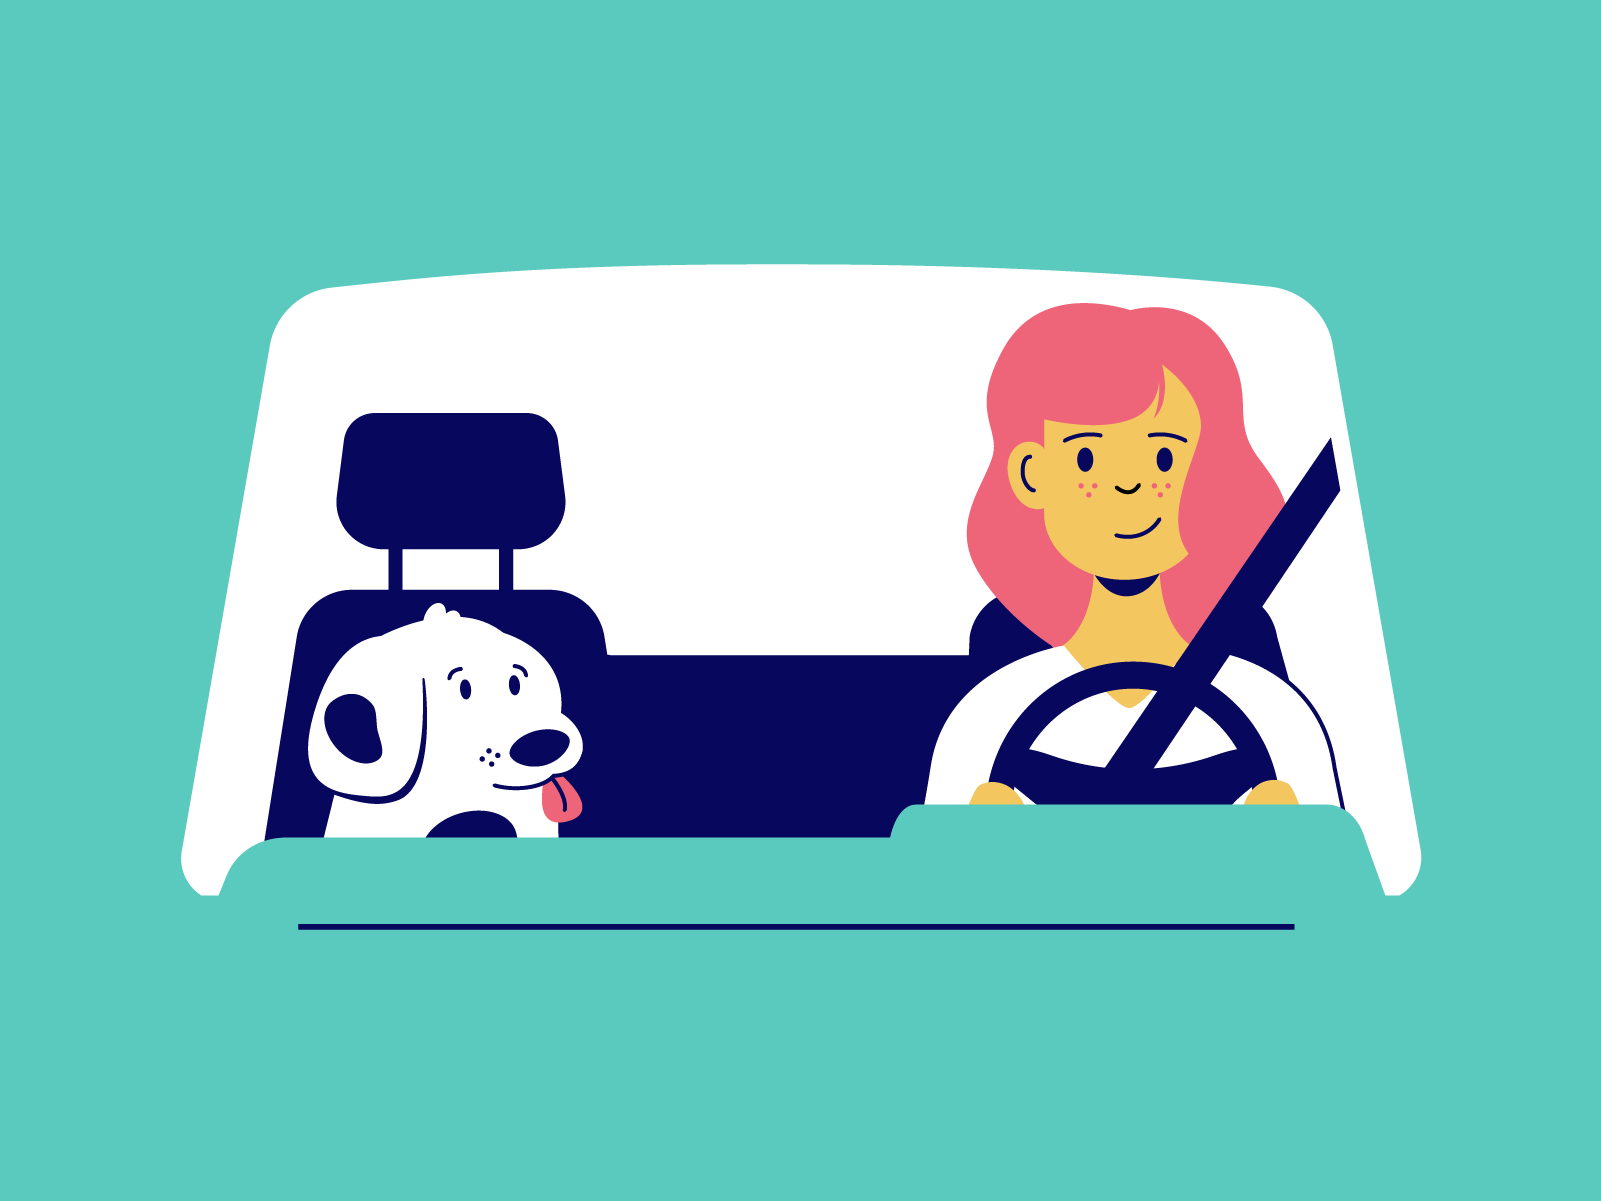 Illustration of a woman with pink hair driving her car with a cute spotted dog in the passenger seat. The perspective is from the front of the car looking straight on into the dashboard window.